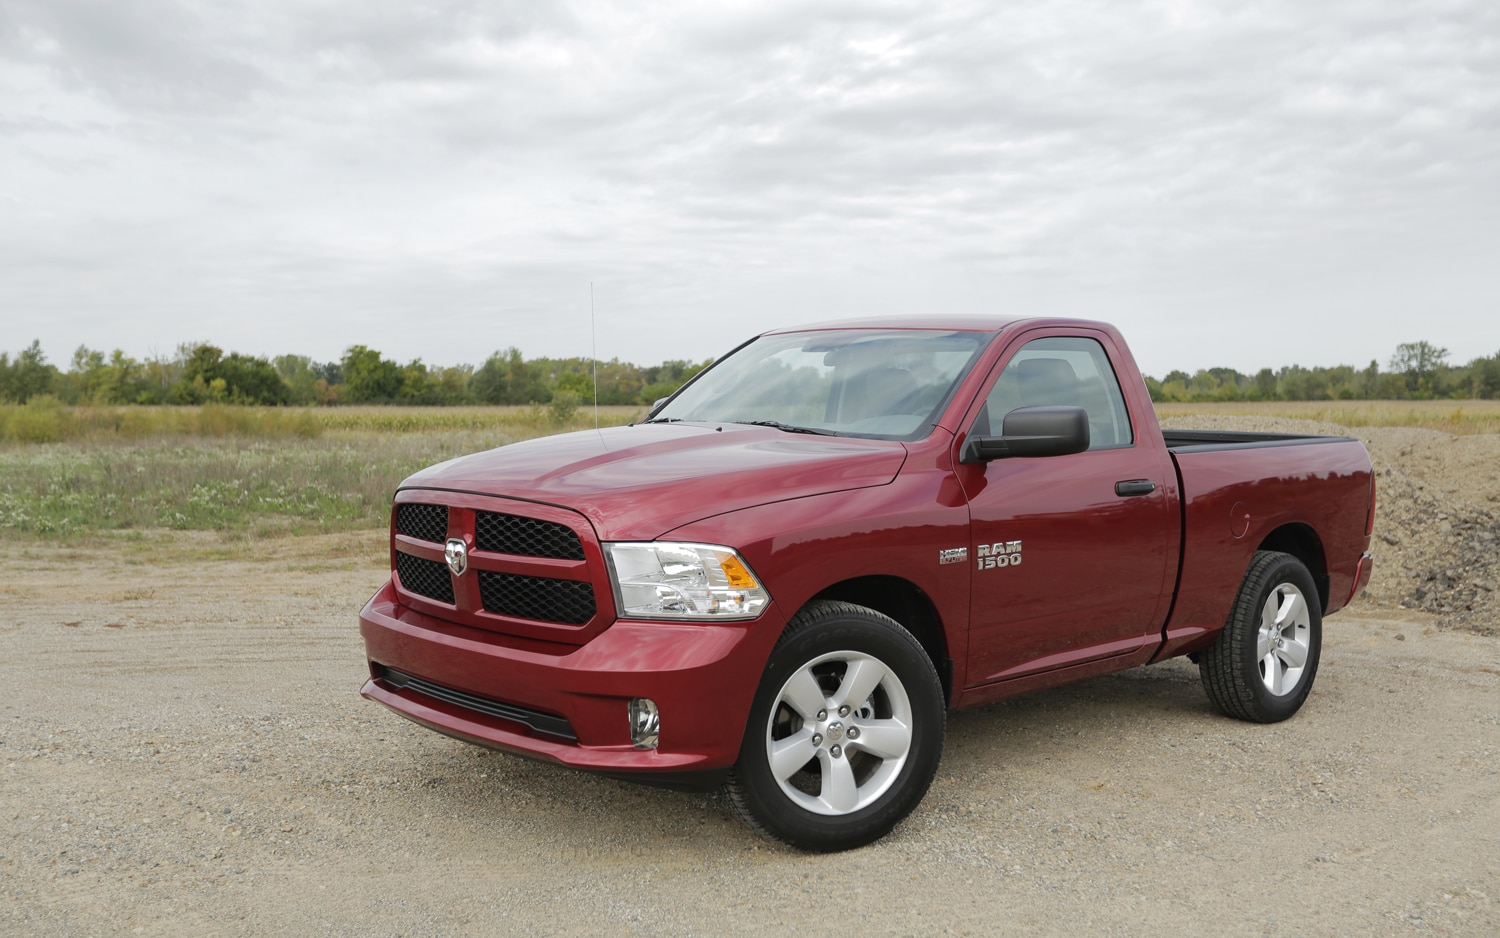 Ram Towing Capacity >> First Drive: 2013 Ram Express - Automobile Magazine